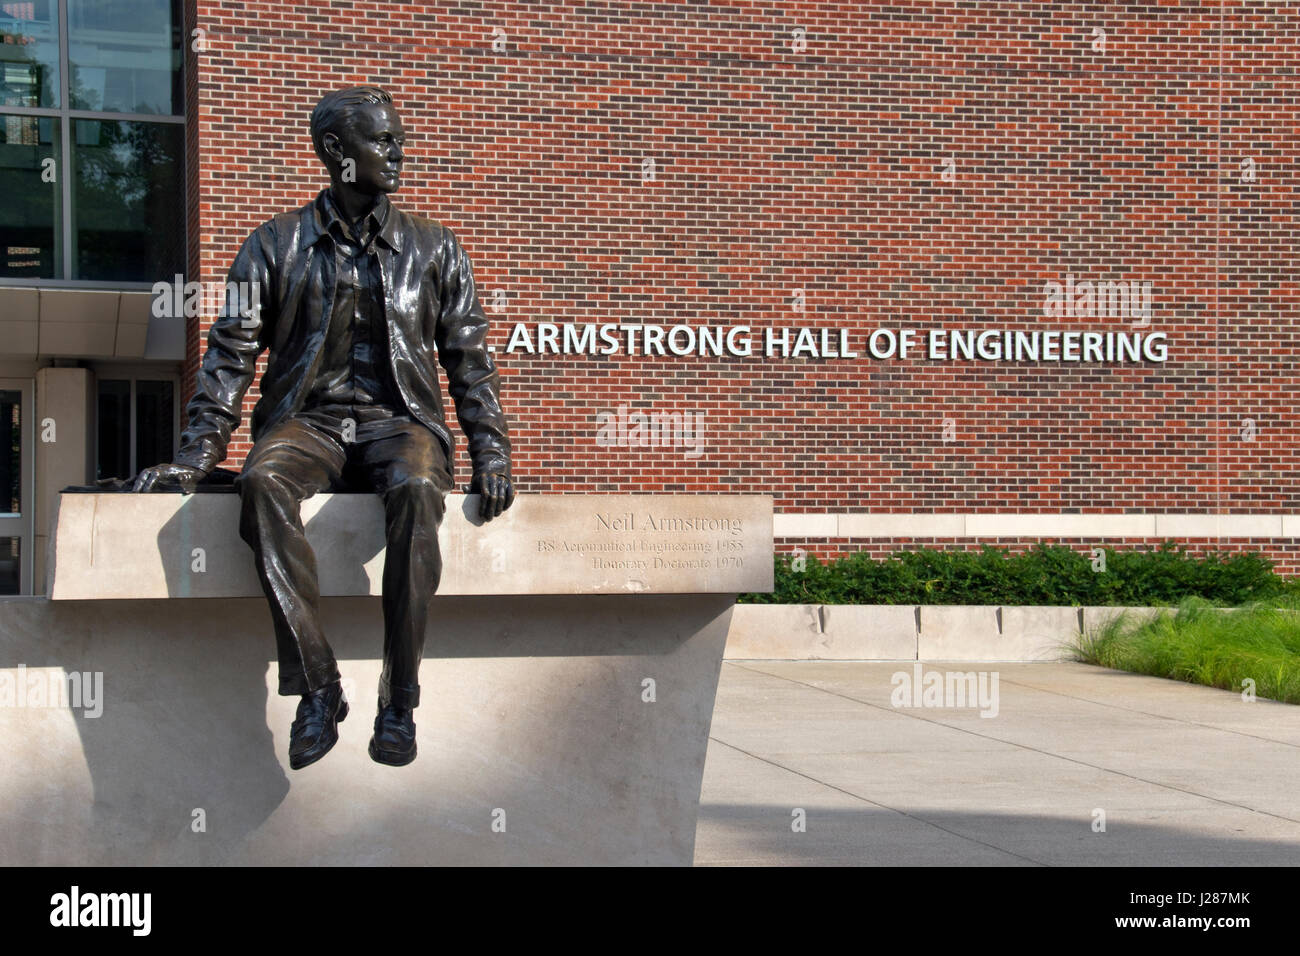 A statue of Apollo 11 astronaut Neil Armstrong outside the Neil Armstrong Hall of Engineering at Purdue University - Stock Image